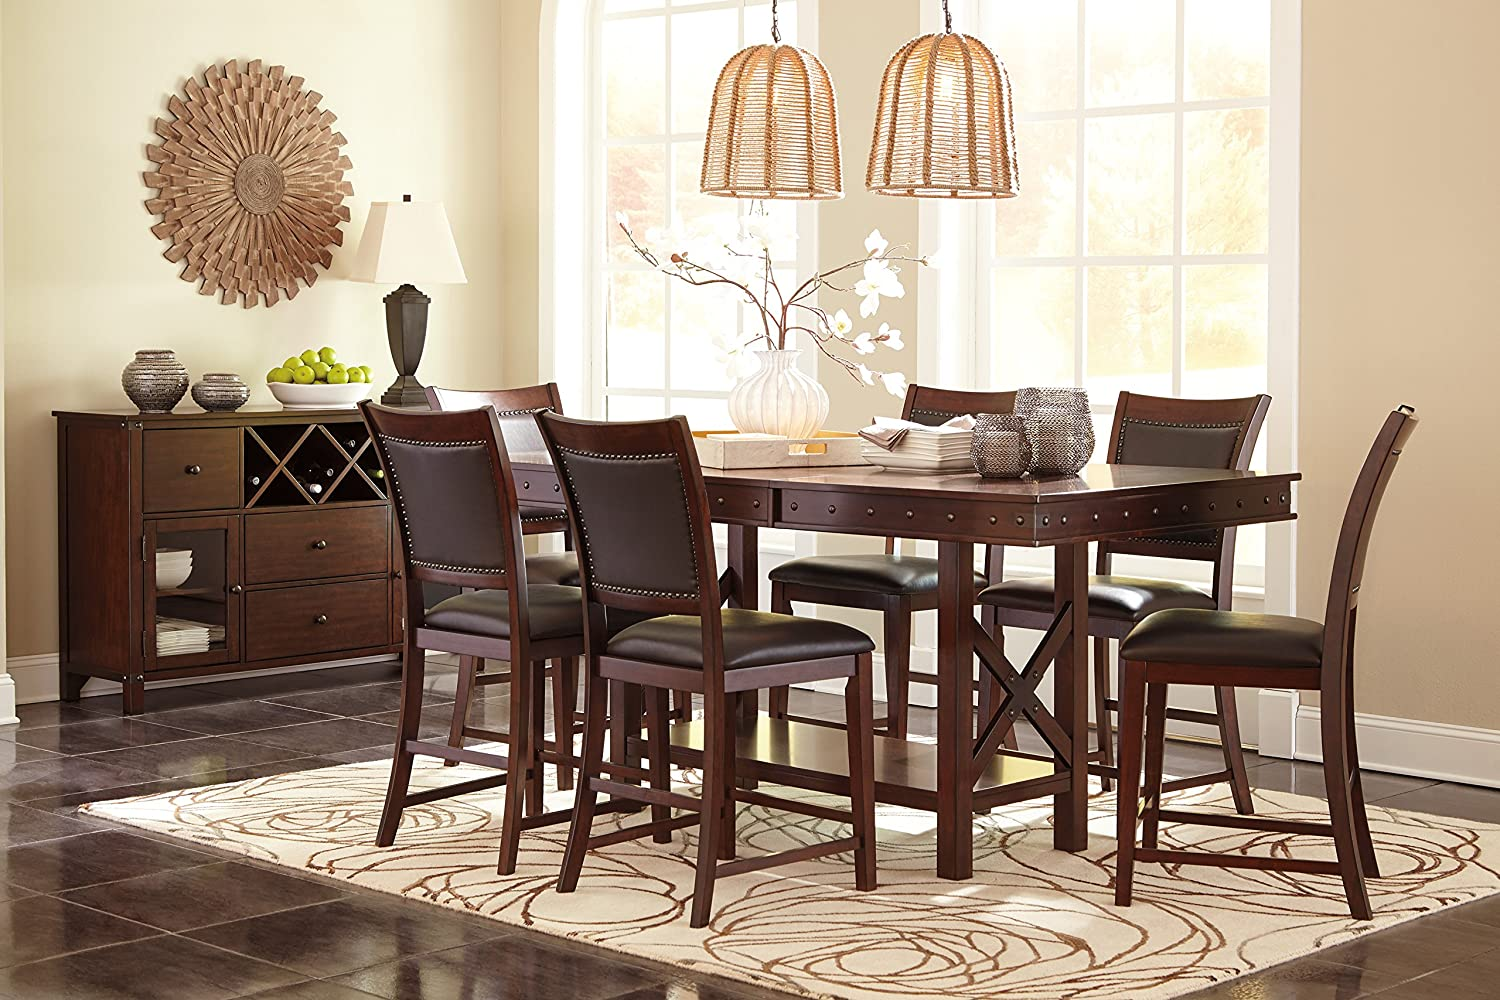 Amazon.com - Collenborg Casual Wood Dark Brown Color Dining ...